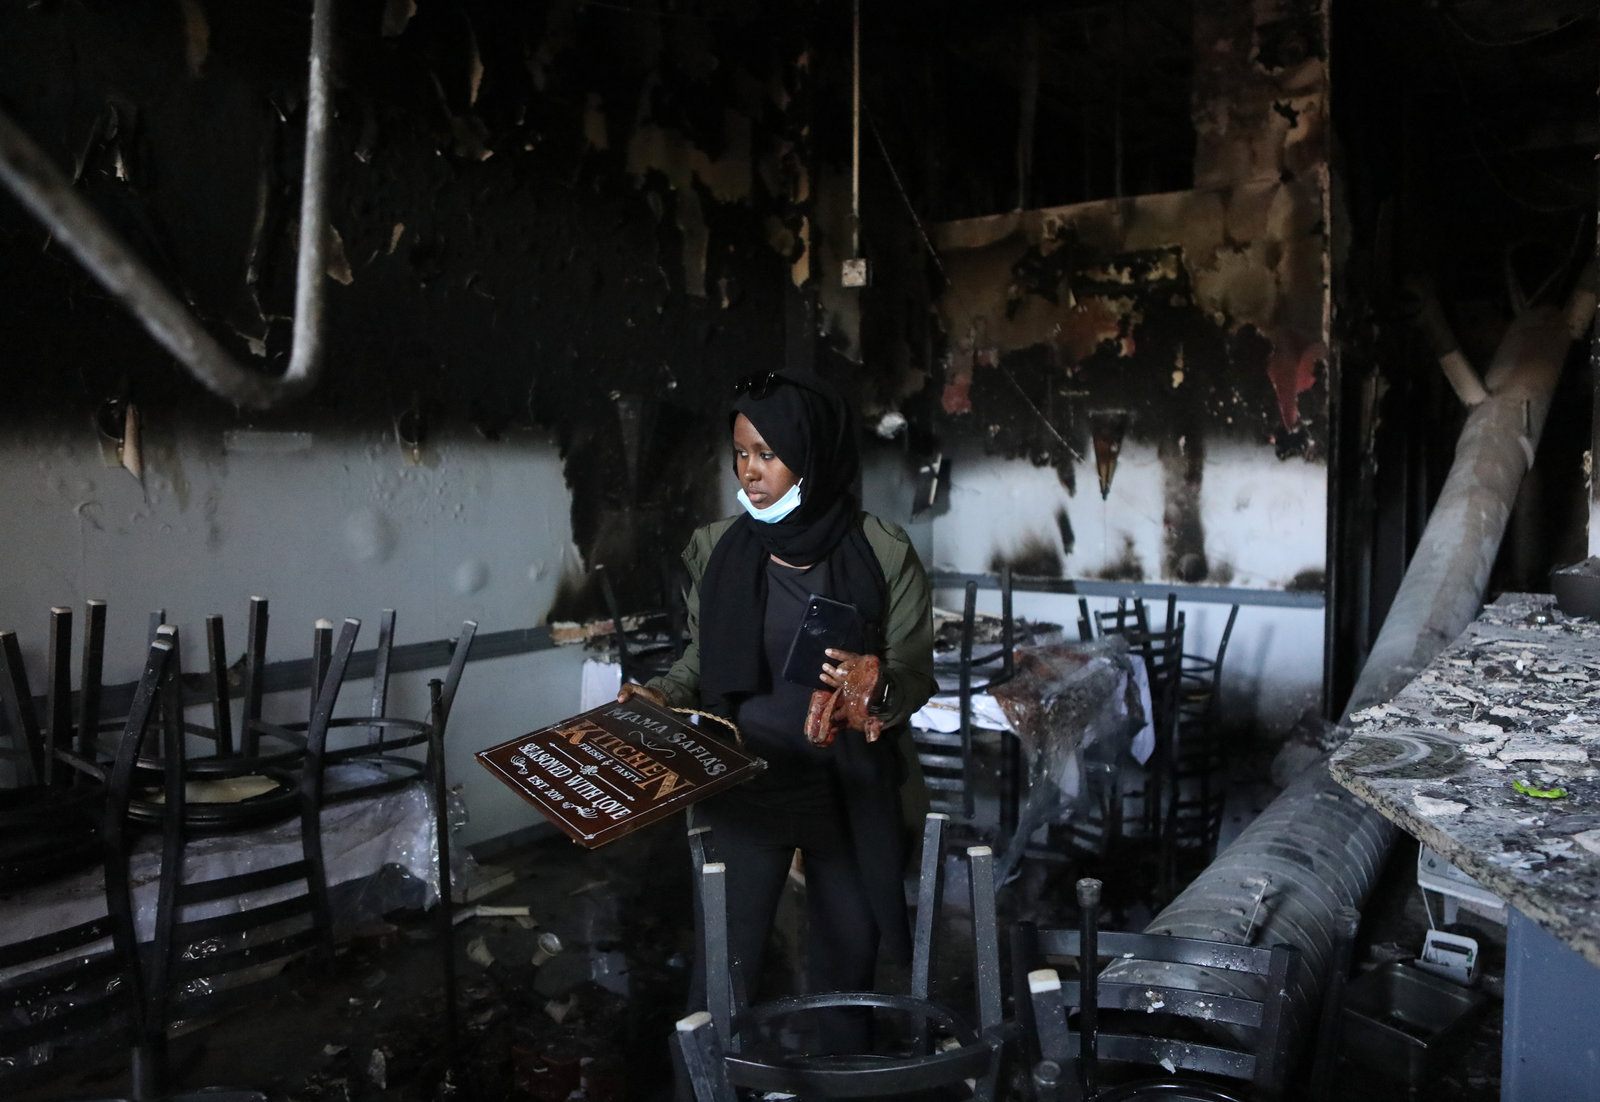 Saida Hassan in a black head scarf stands with a phone in one hand, a restaurant sign in the other, in burned out seating area of a restaurant.